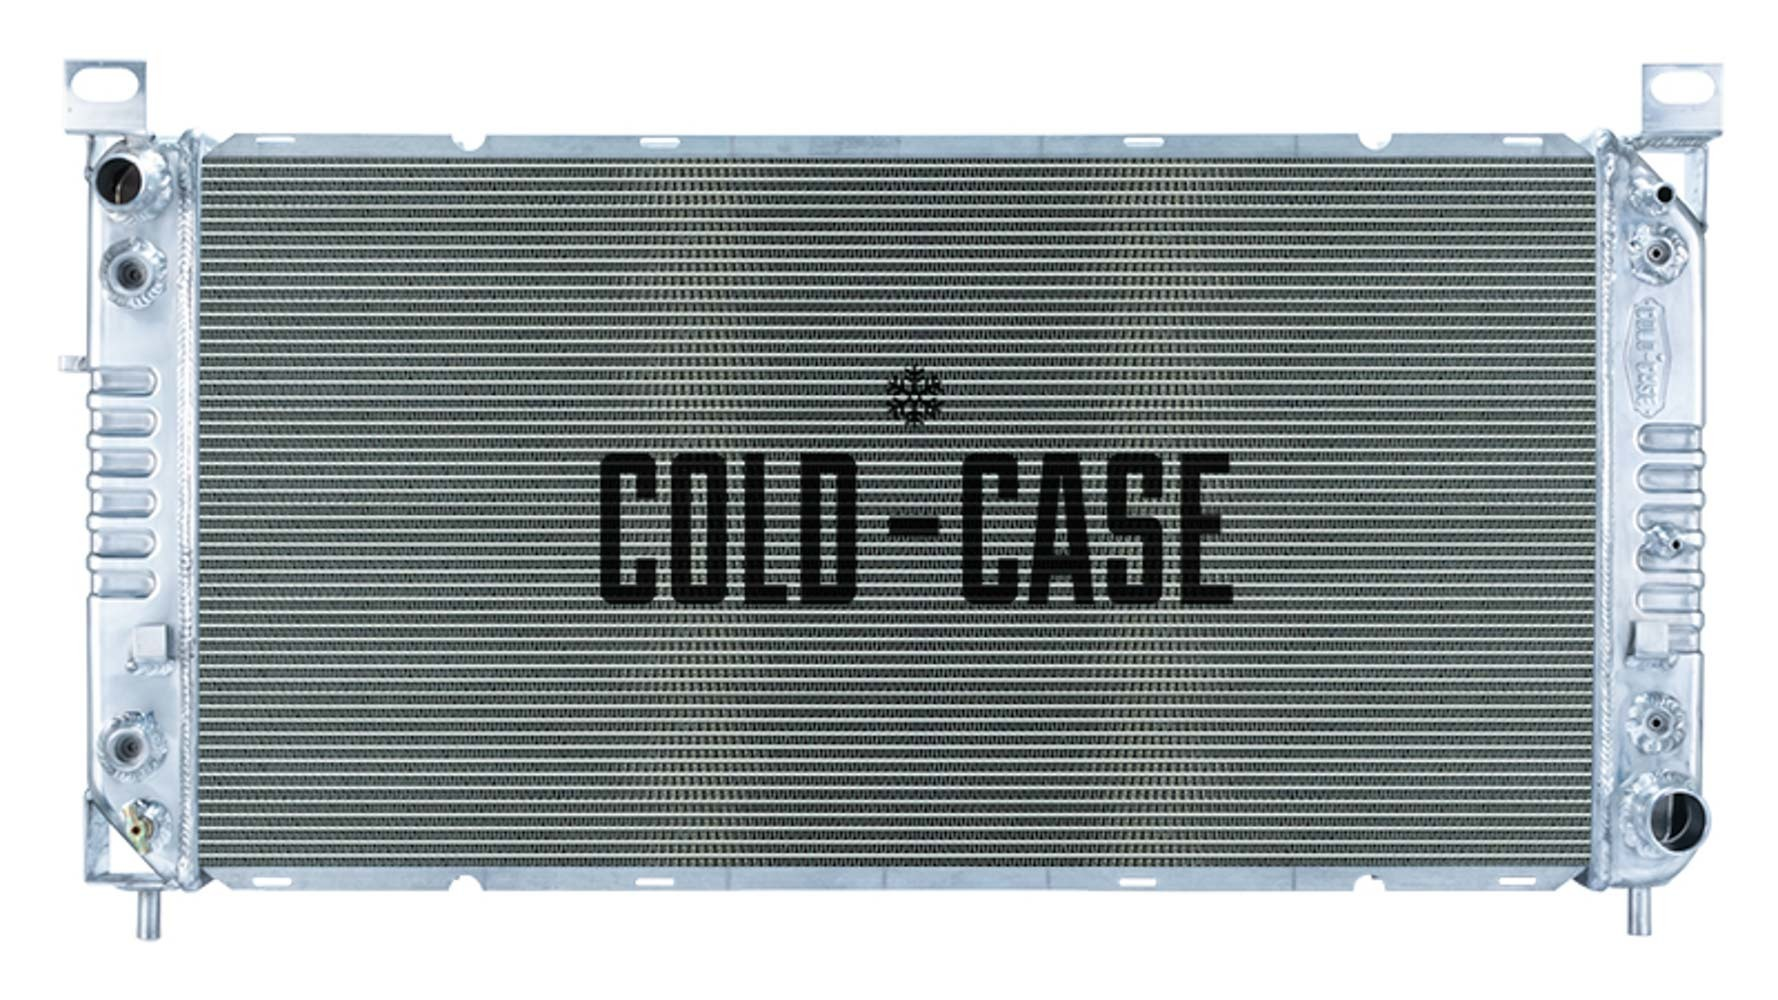 Cold Case Radiators GMT569A Radiator, 40 in W x 21 in H x 3 in D, Driver Side Inlet, Passenger Side Outlet, Aluminum, Polished, Automatic, Oil Cooler, GM Fullsize Truck 1999-2012, Each